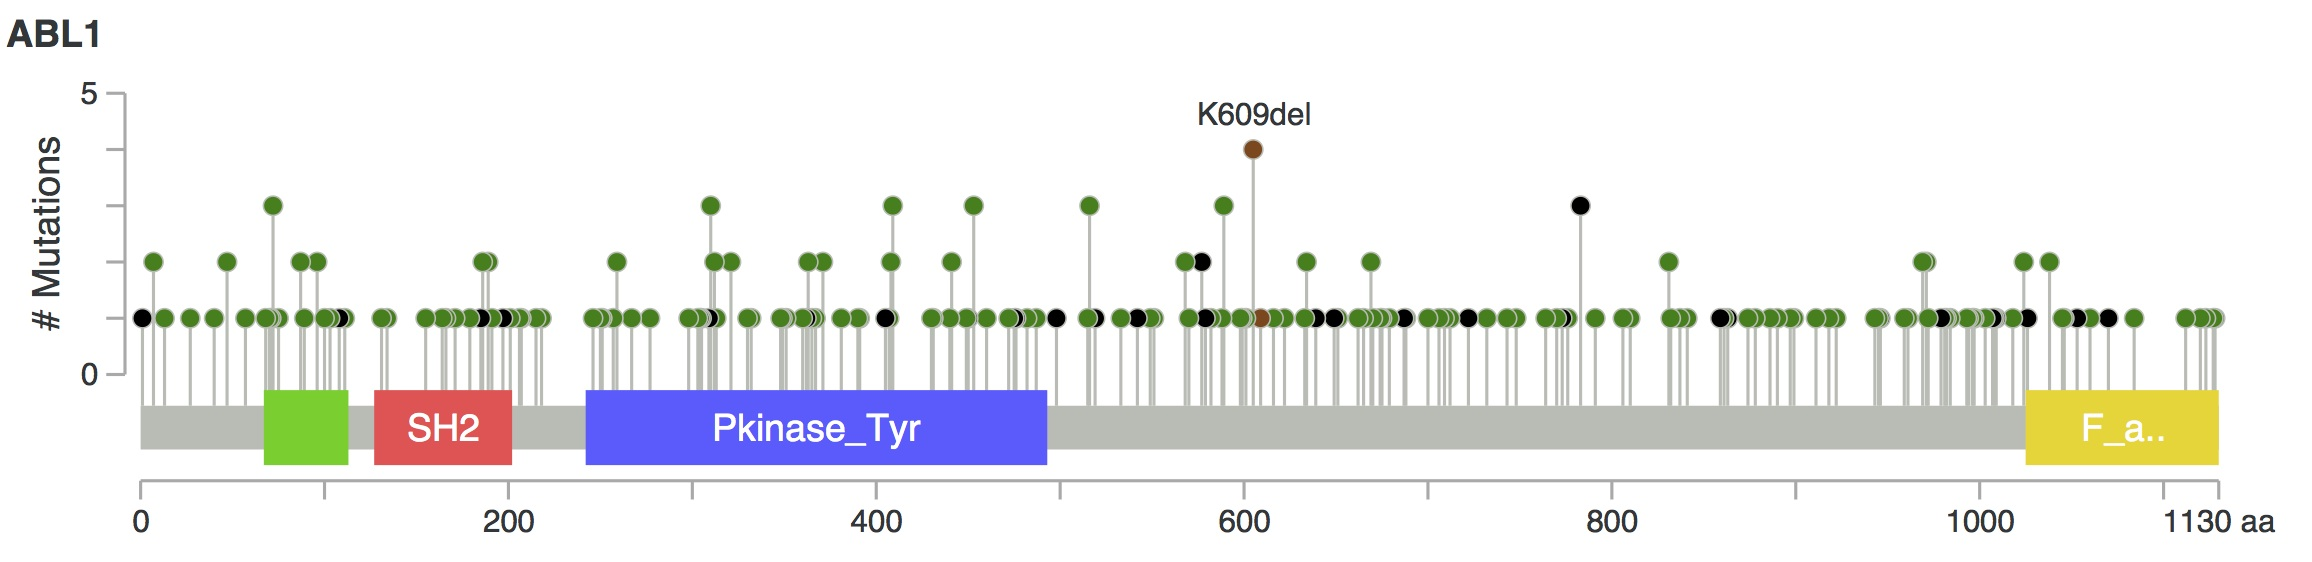 Many mutations in Abl are located in the kinase domain, the molecular target of therapy (figure from cbioportal).